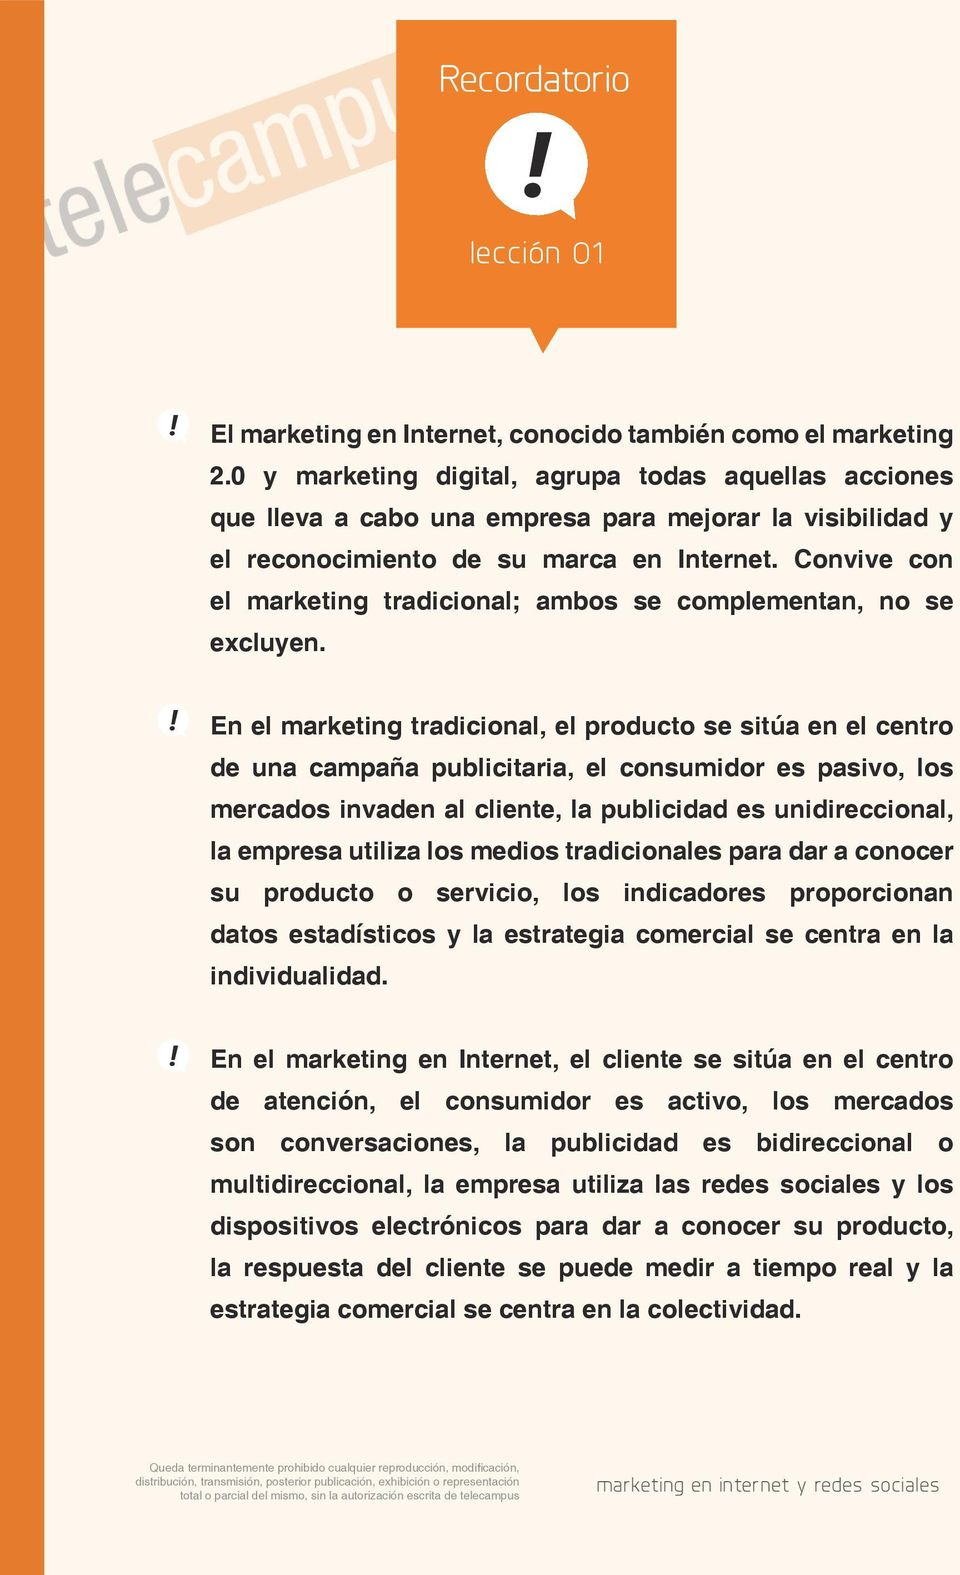 Convive con el marketing tradicional; ambos se complementan, no se excluyen.